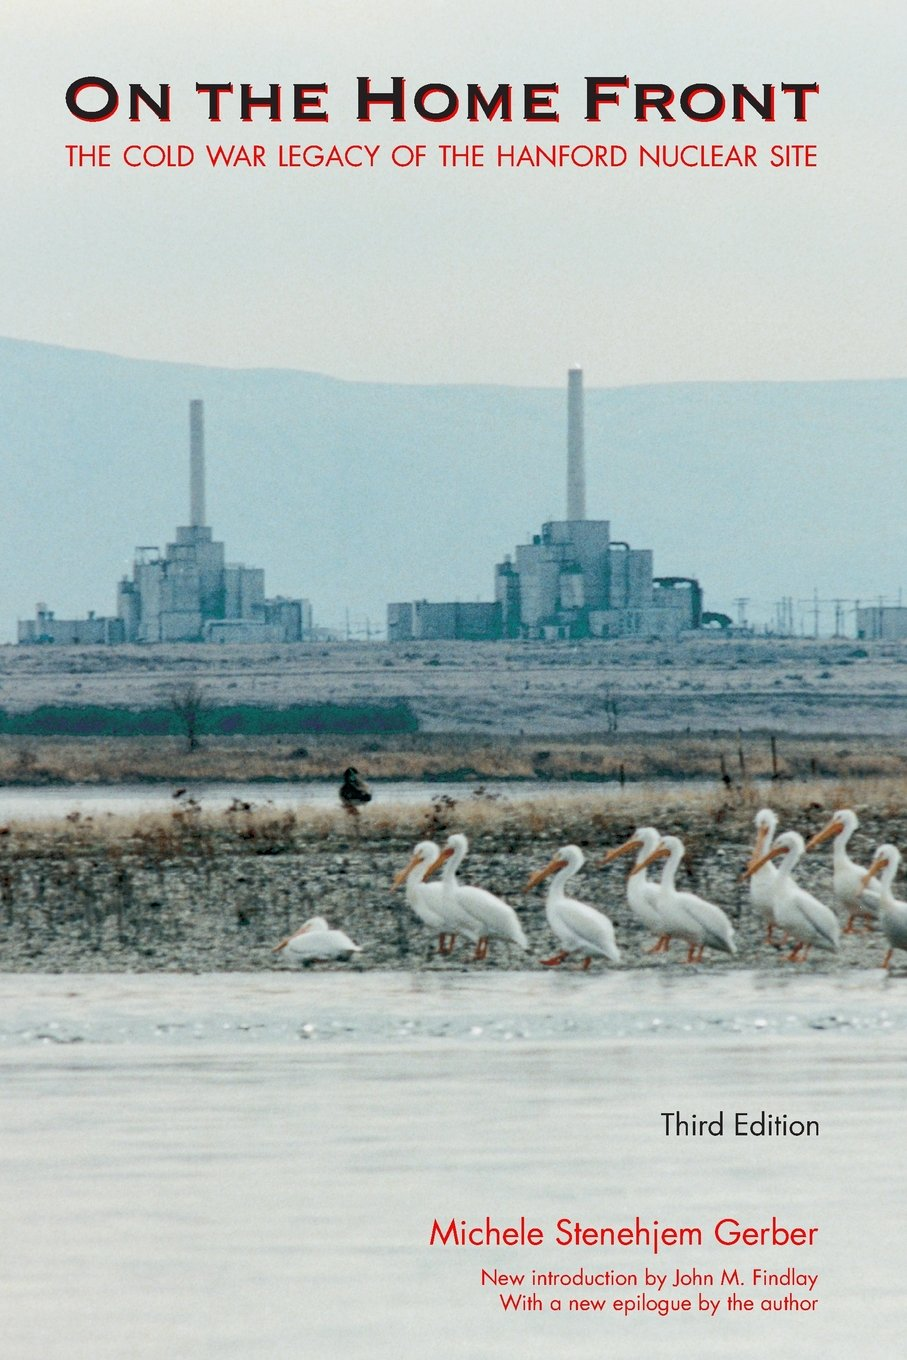 Image for On the Home Front: The Cold War Legacy of the Hanford Nuclear Site, Third Edition